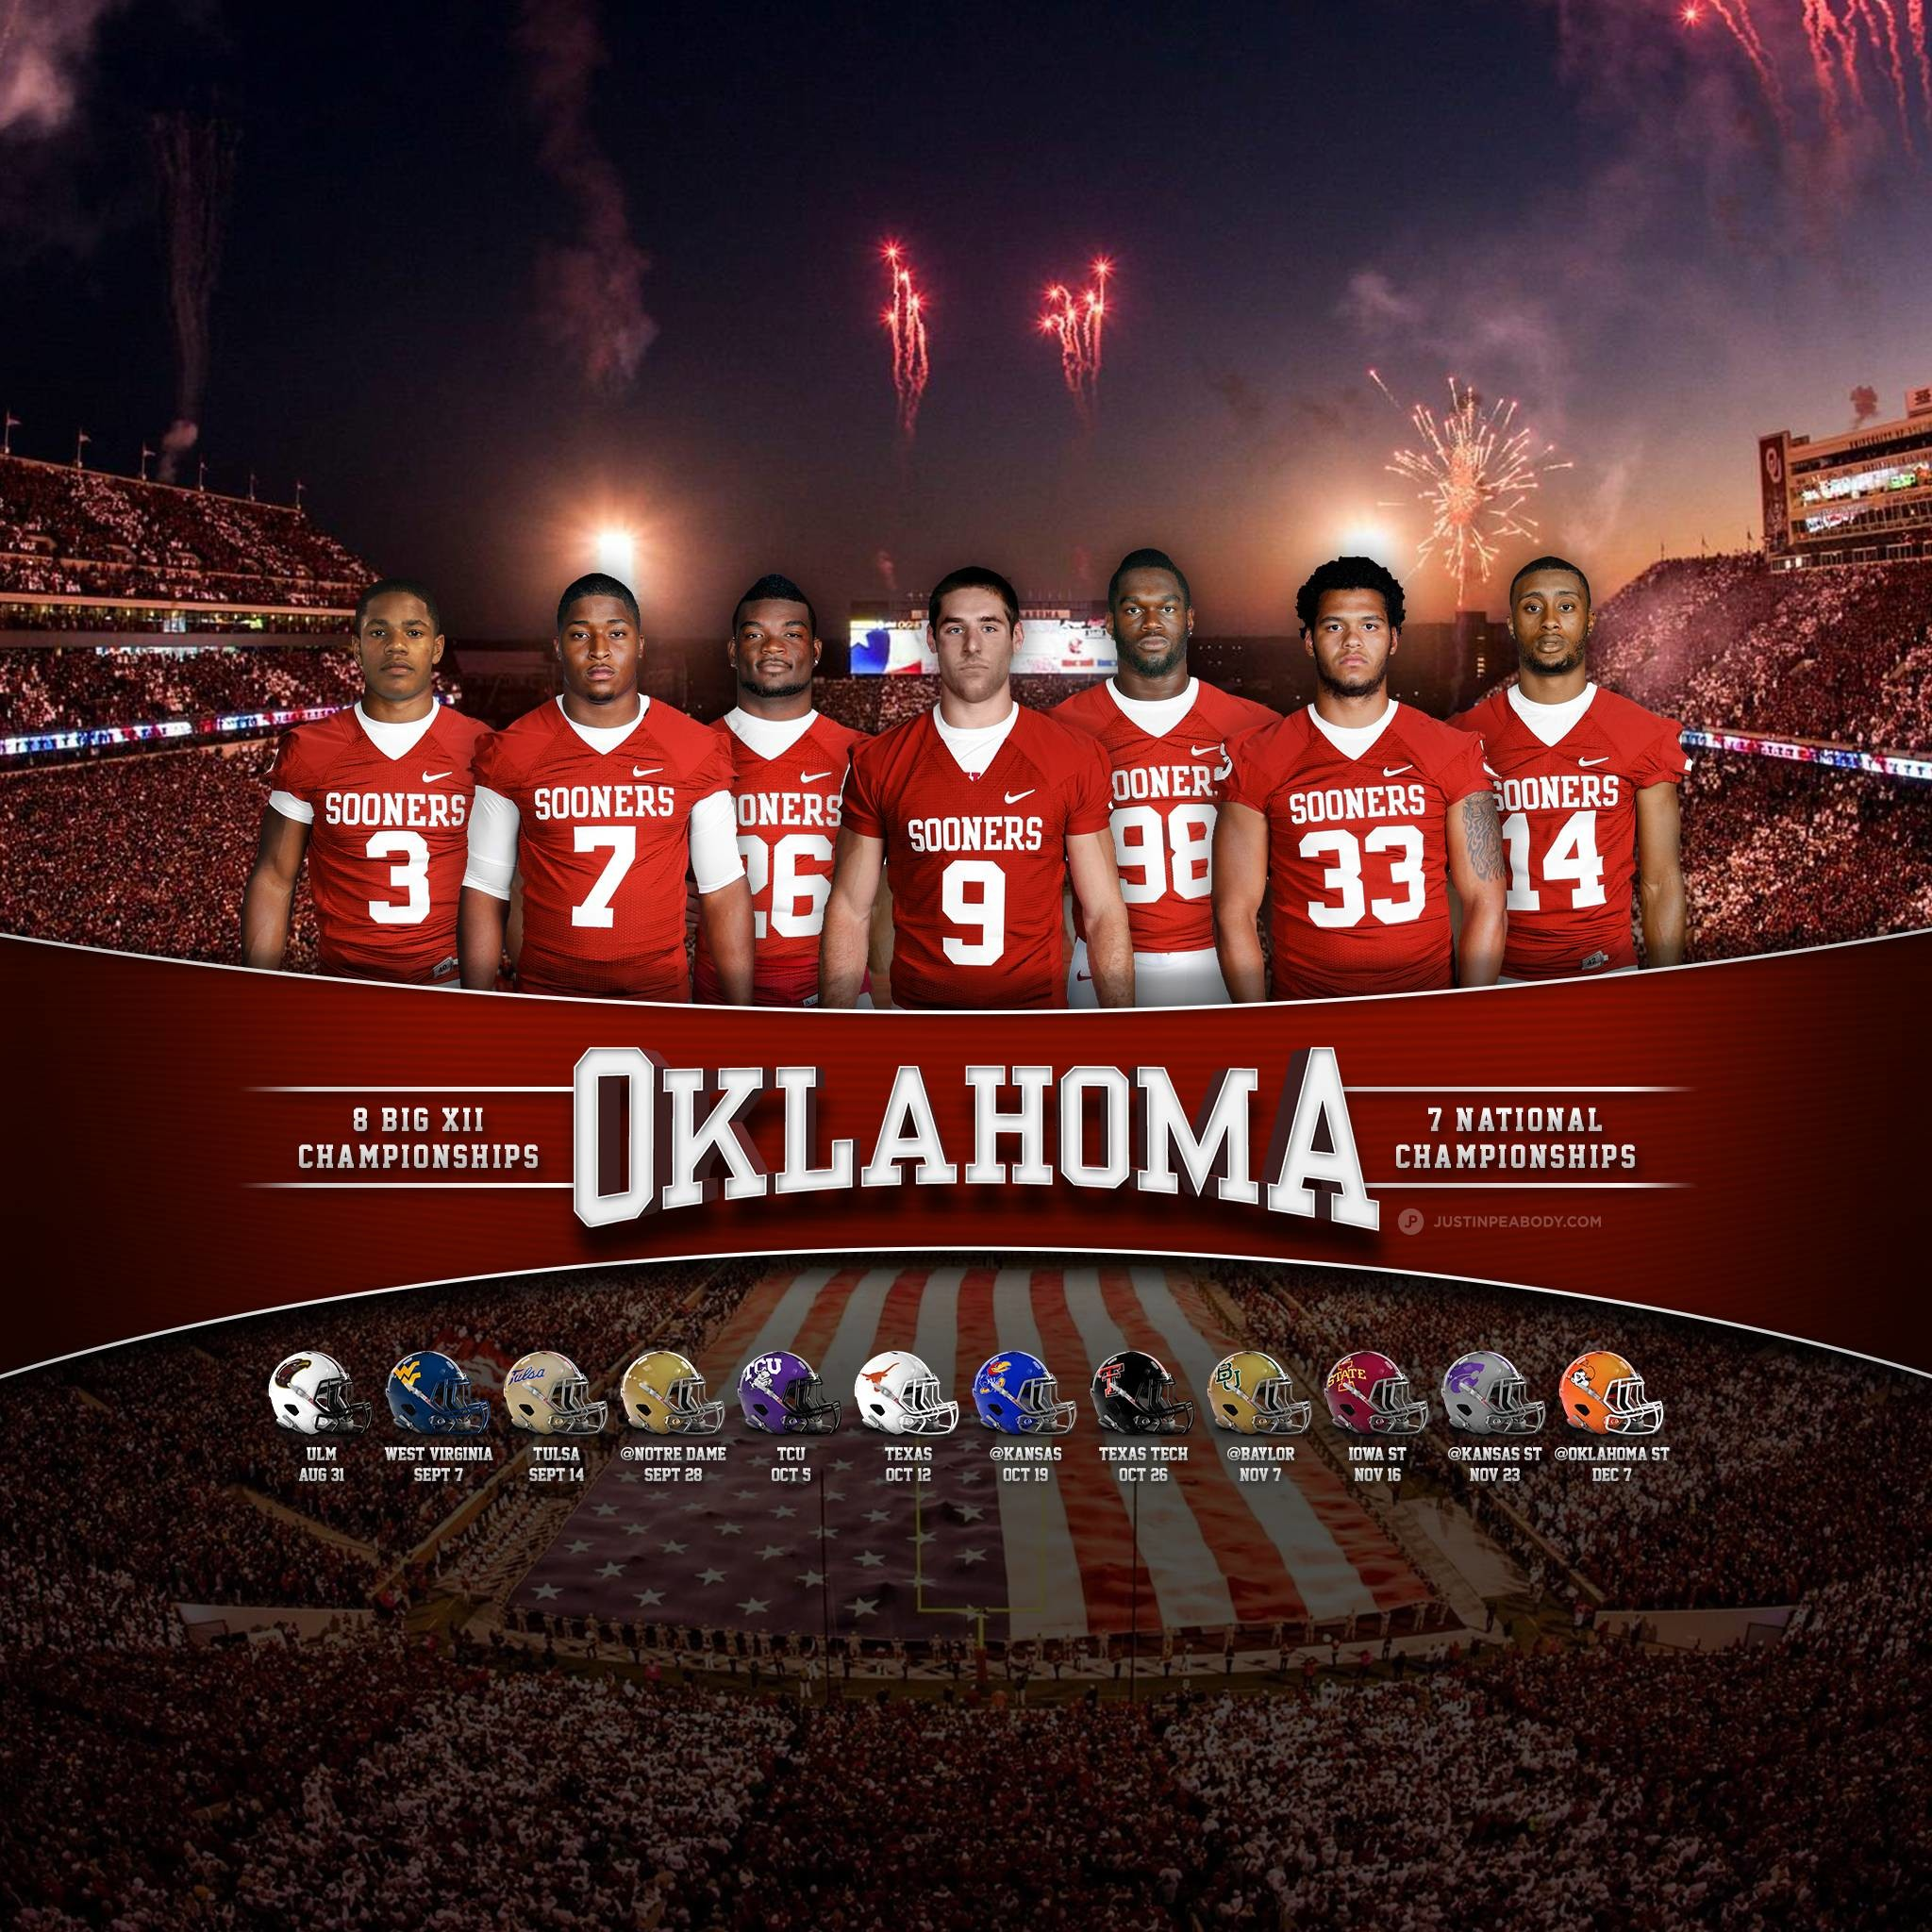 2100x1500 Nice Images Collection: Oklahoma Sooners Desktop Wallpapers